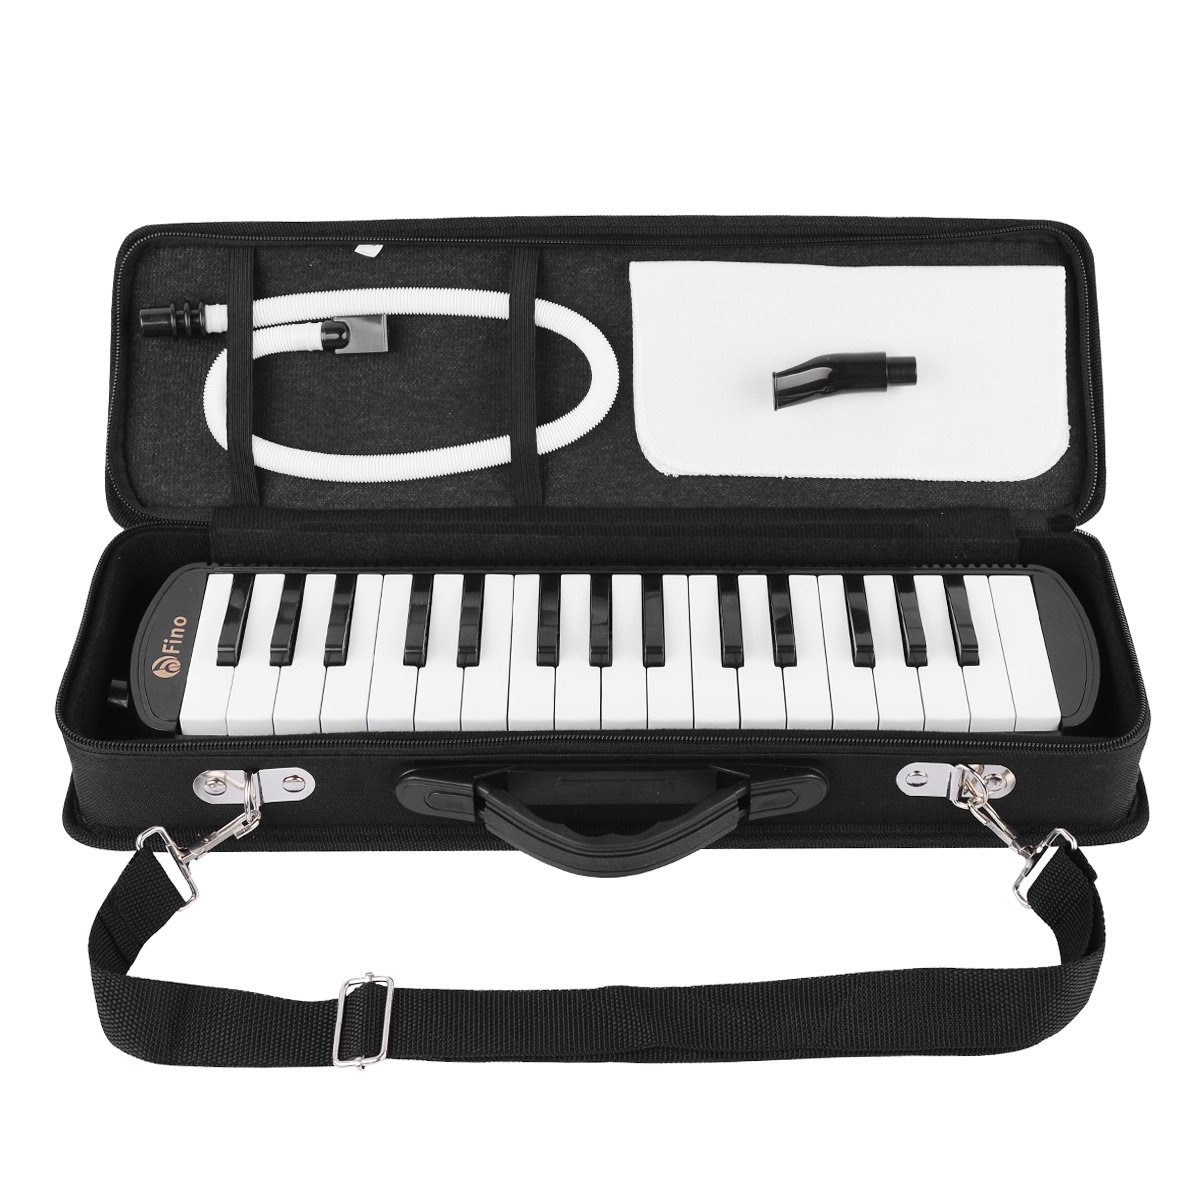 FINO 32 Key Melodica Instrument Air Piano Keyboards Pianica Wind Musical Instrument Folk World Key Instruments with Mouthpiece Tube Set Portable for Music Lover Beginners Gift with Carrying Bag Black by FINO (Image #7)